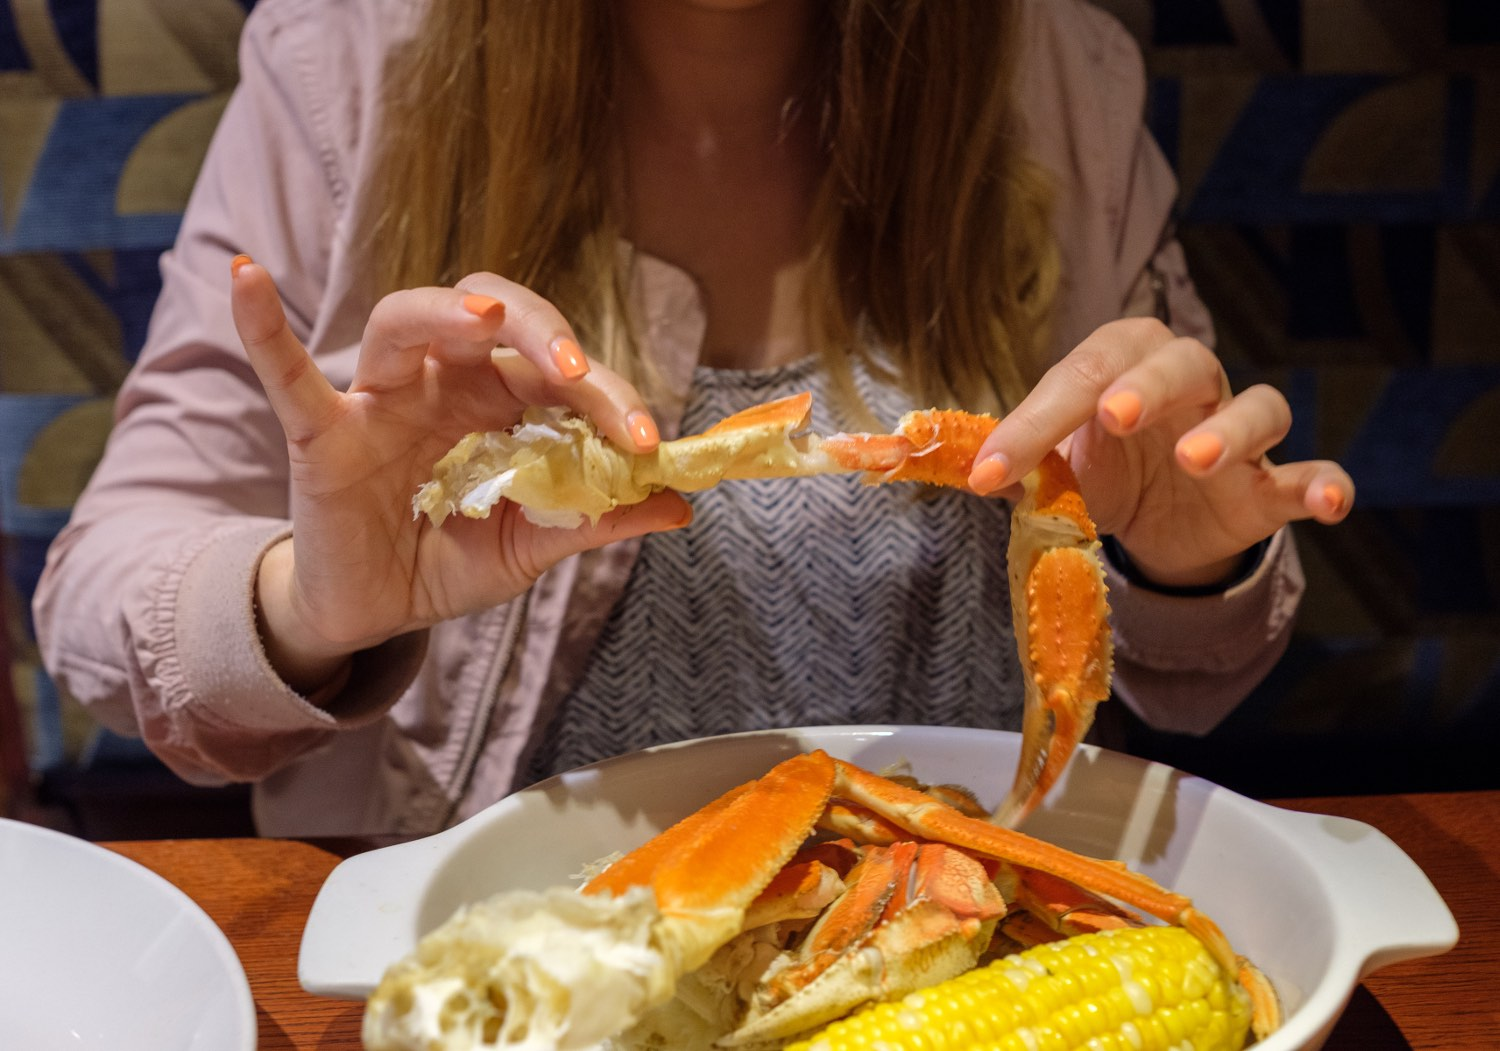 crabfest dueling crab legs at red lobster